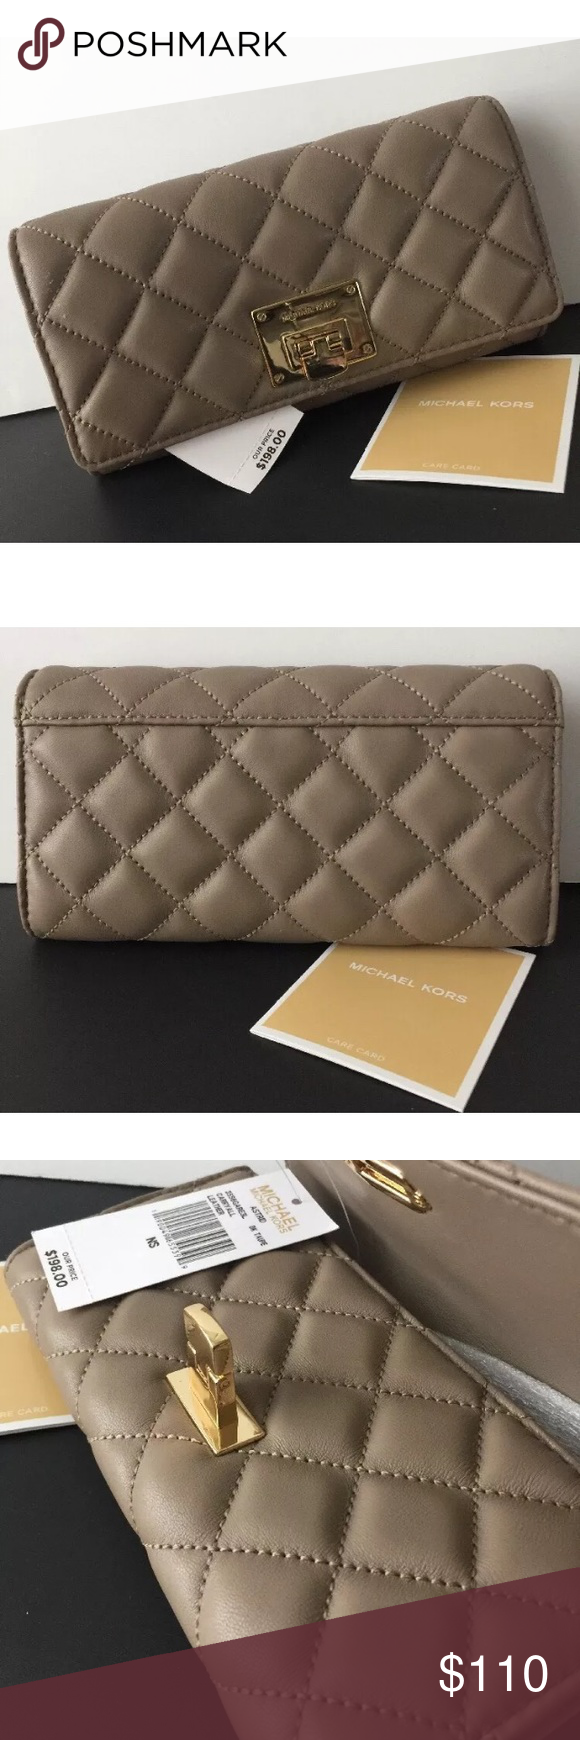 4e8448897ef2 Michael Kors Astrid Carryall Quilt Lthr Wallet 100% AUTHENTIC! NEW WITH TAG   amp